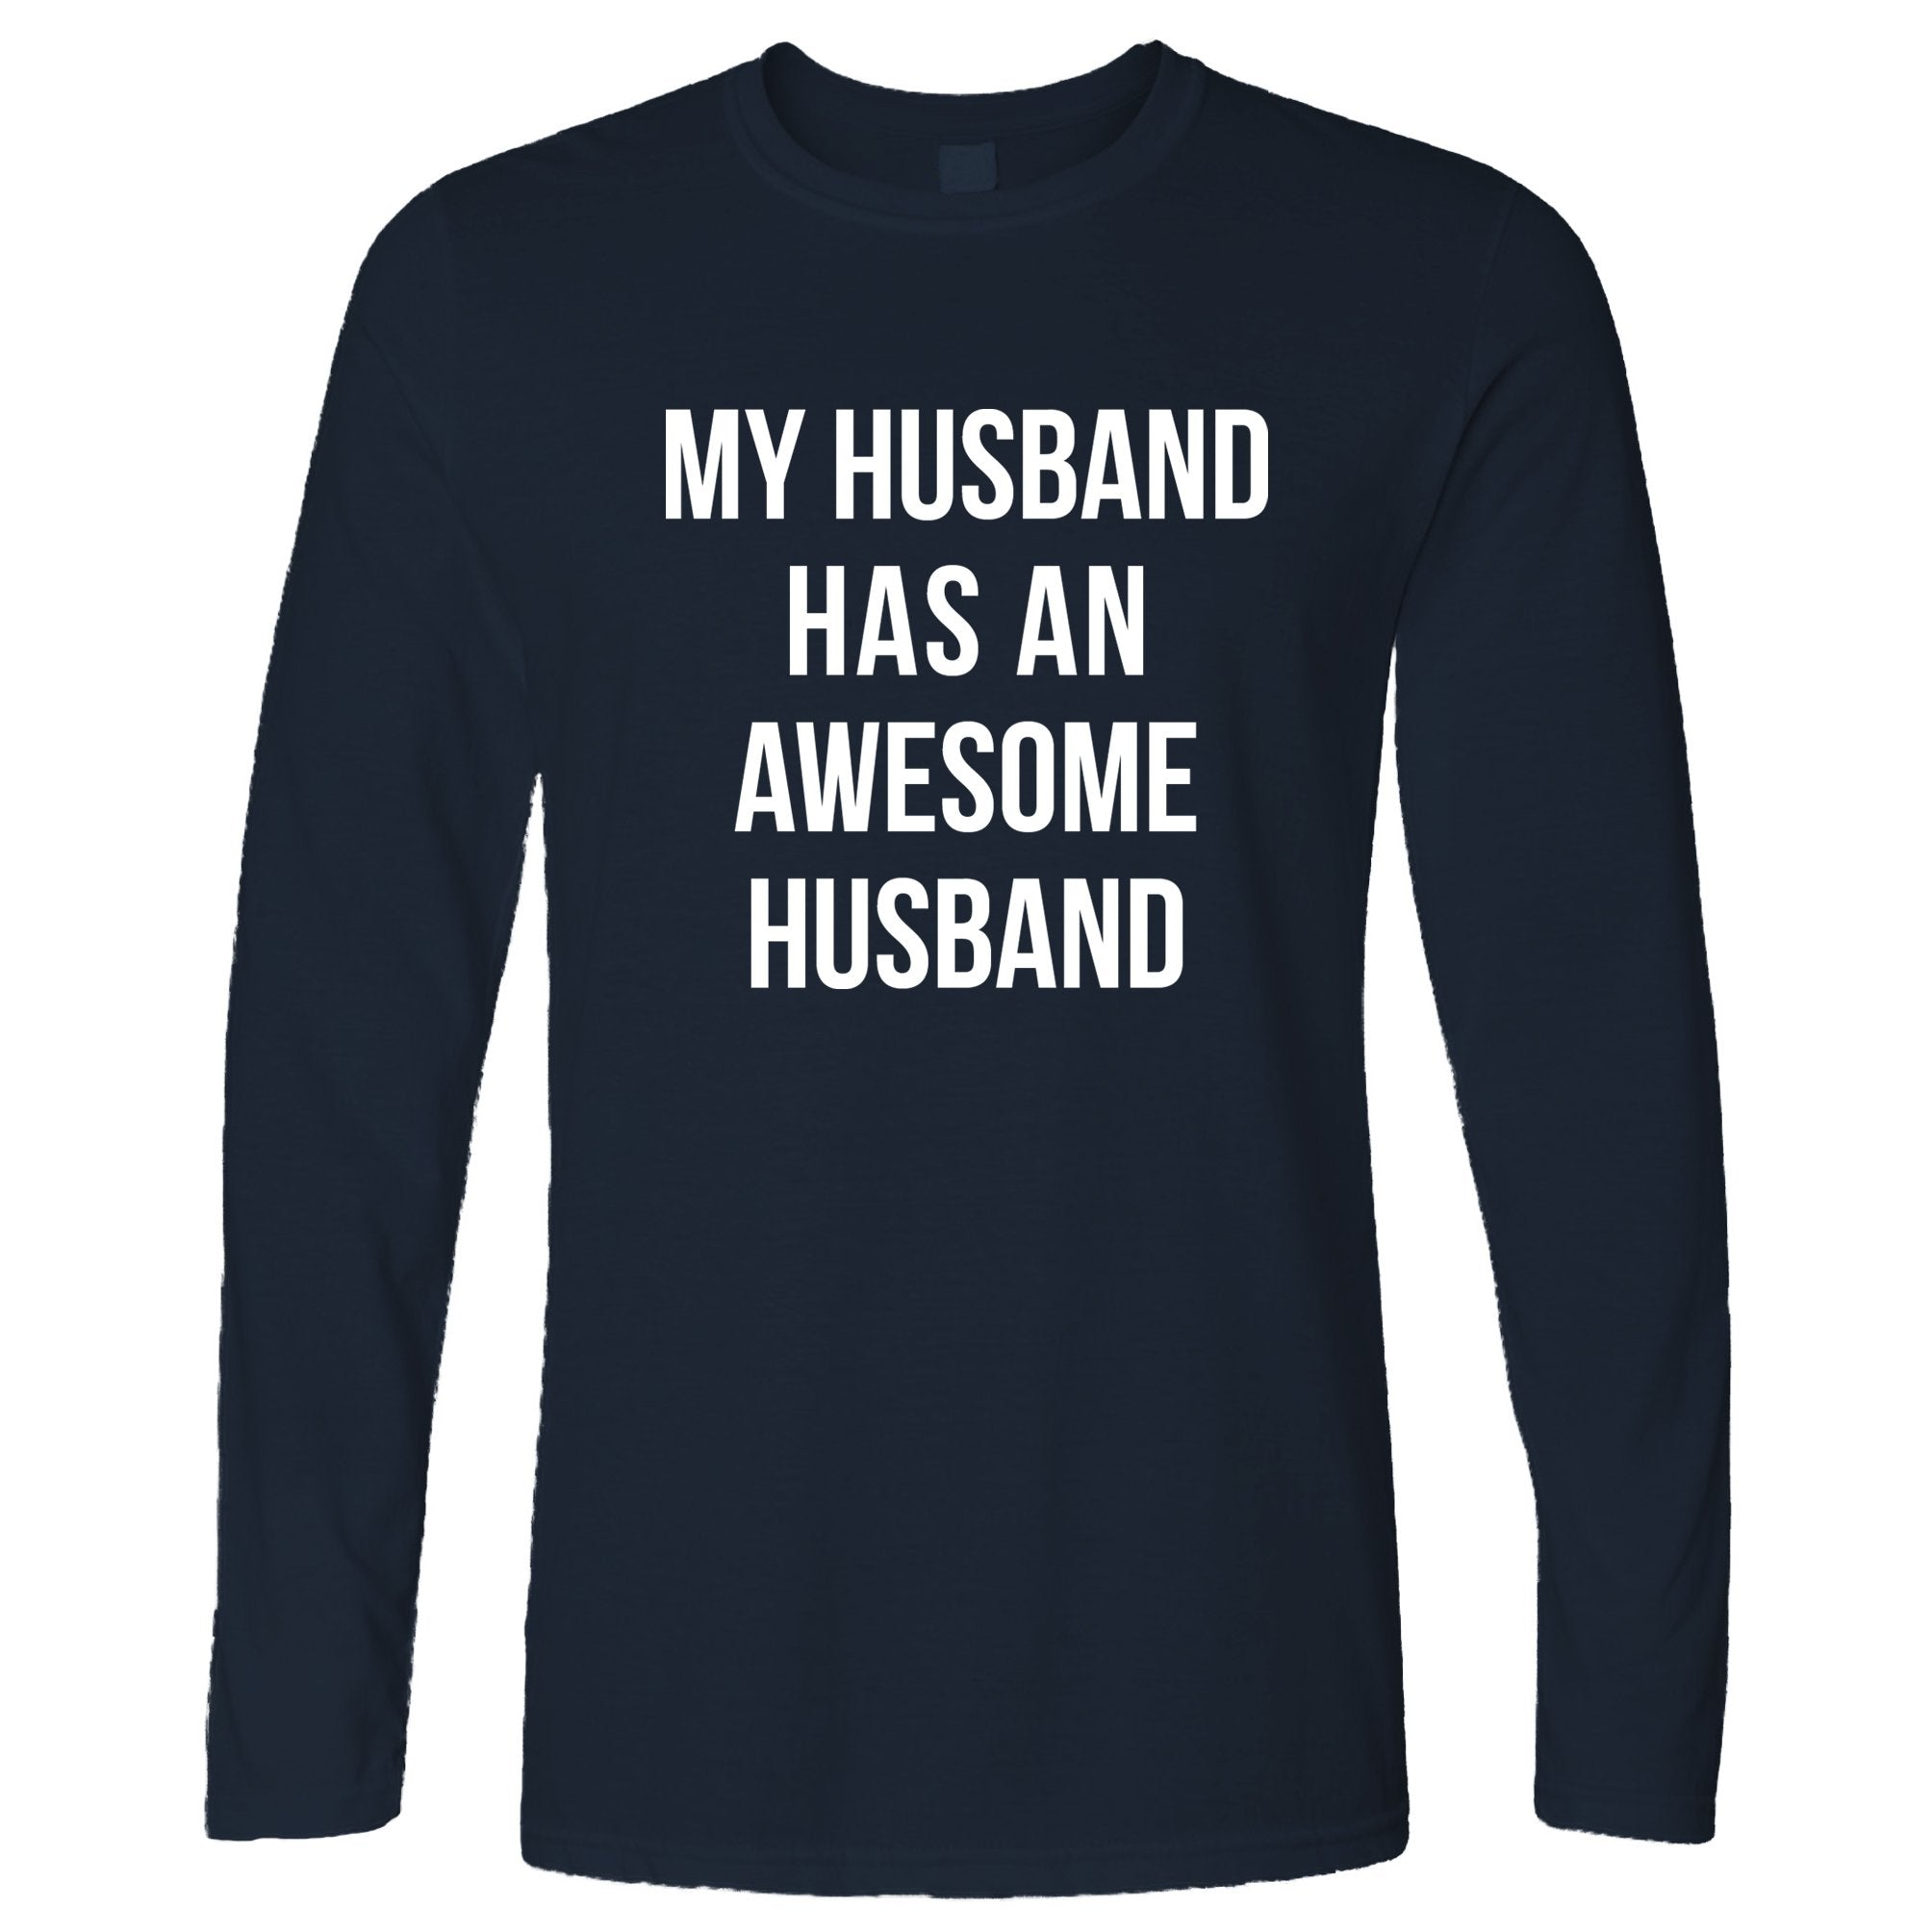 Joke Couples Long Sleeve My Husband Has An Awesome Husband T-Shirt